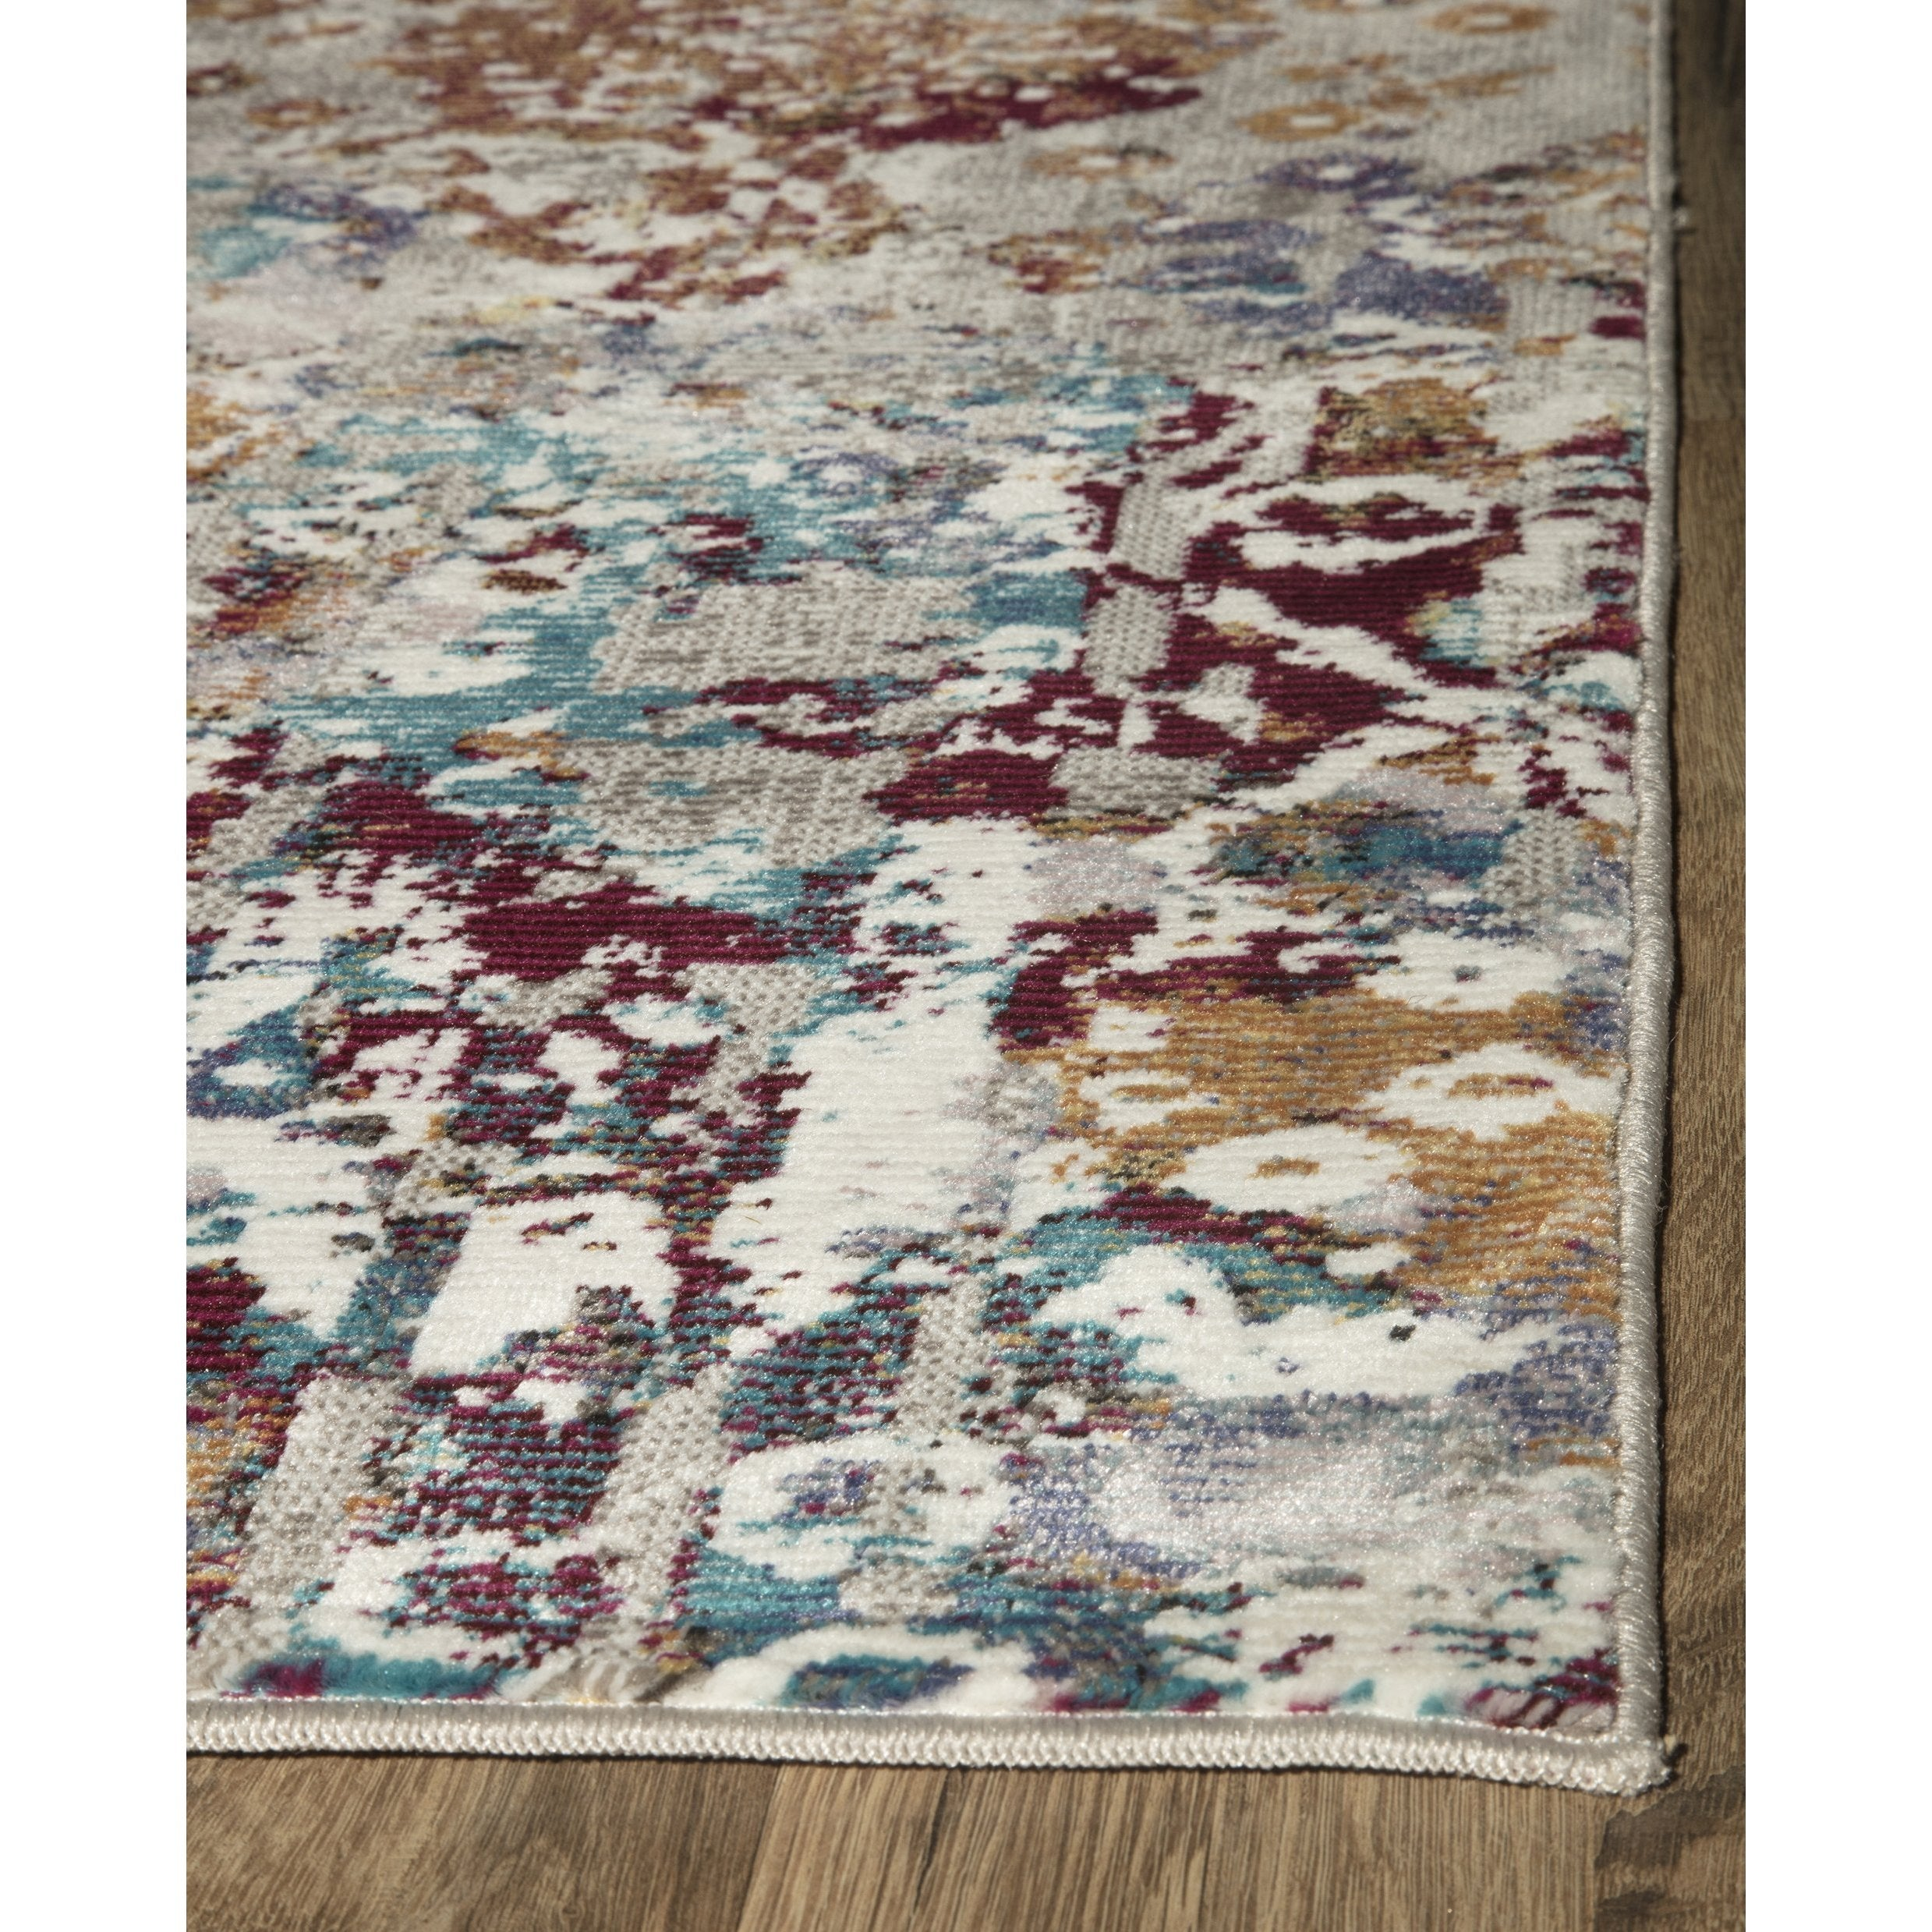 Astounded Rug